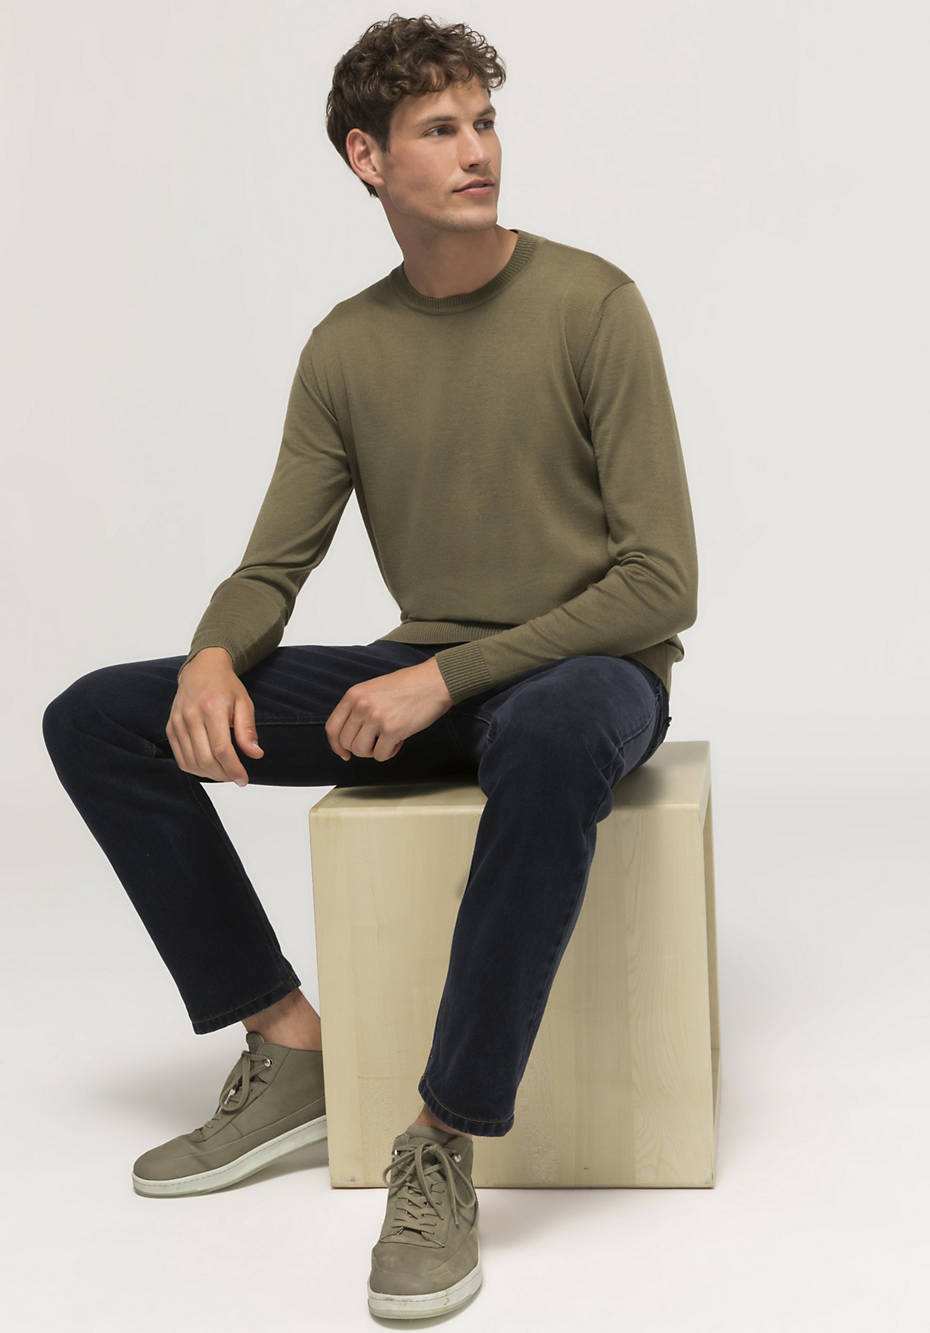 Plant-dyed sweater made of pure merino wool